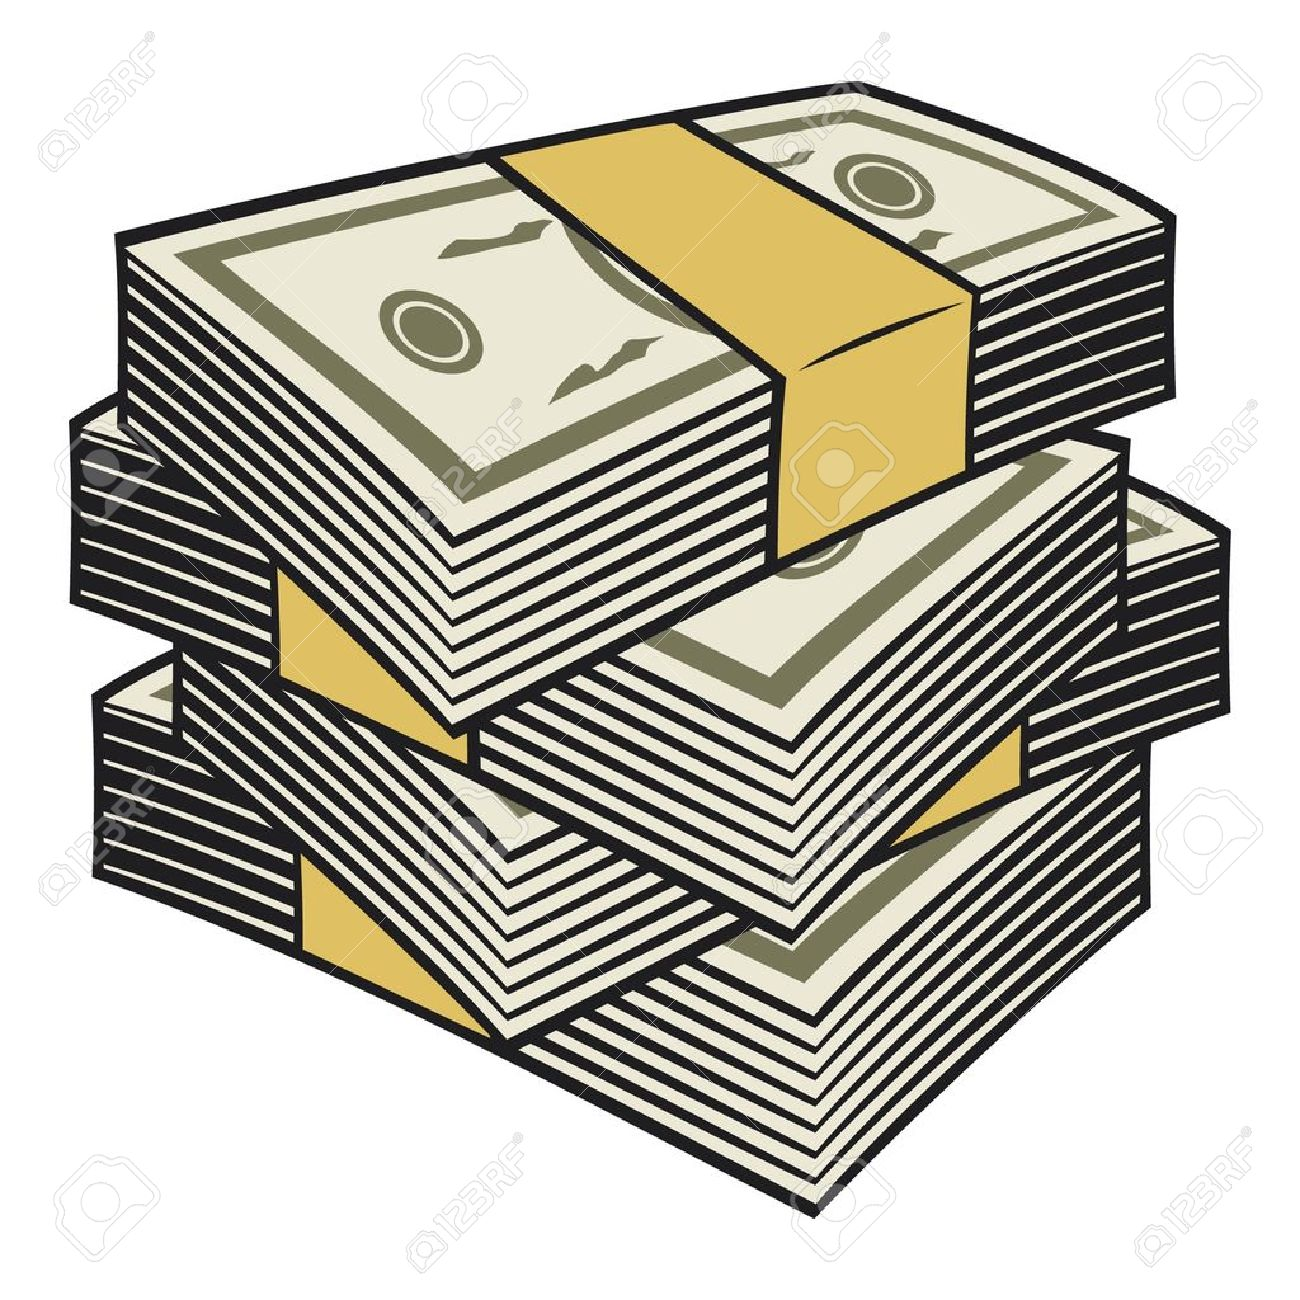 big stack of money royalty free cliparts vectors and stock rh 123rf com Woman with Money Clip Art free clipart stack of money